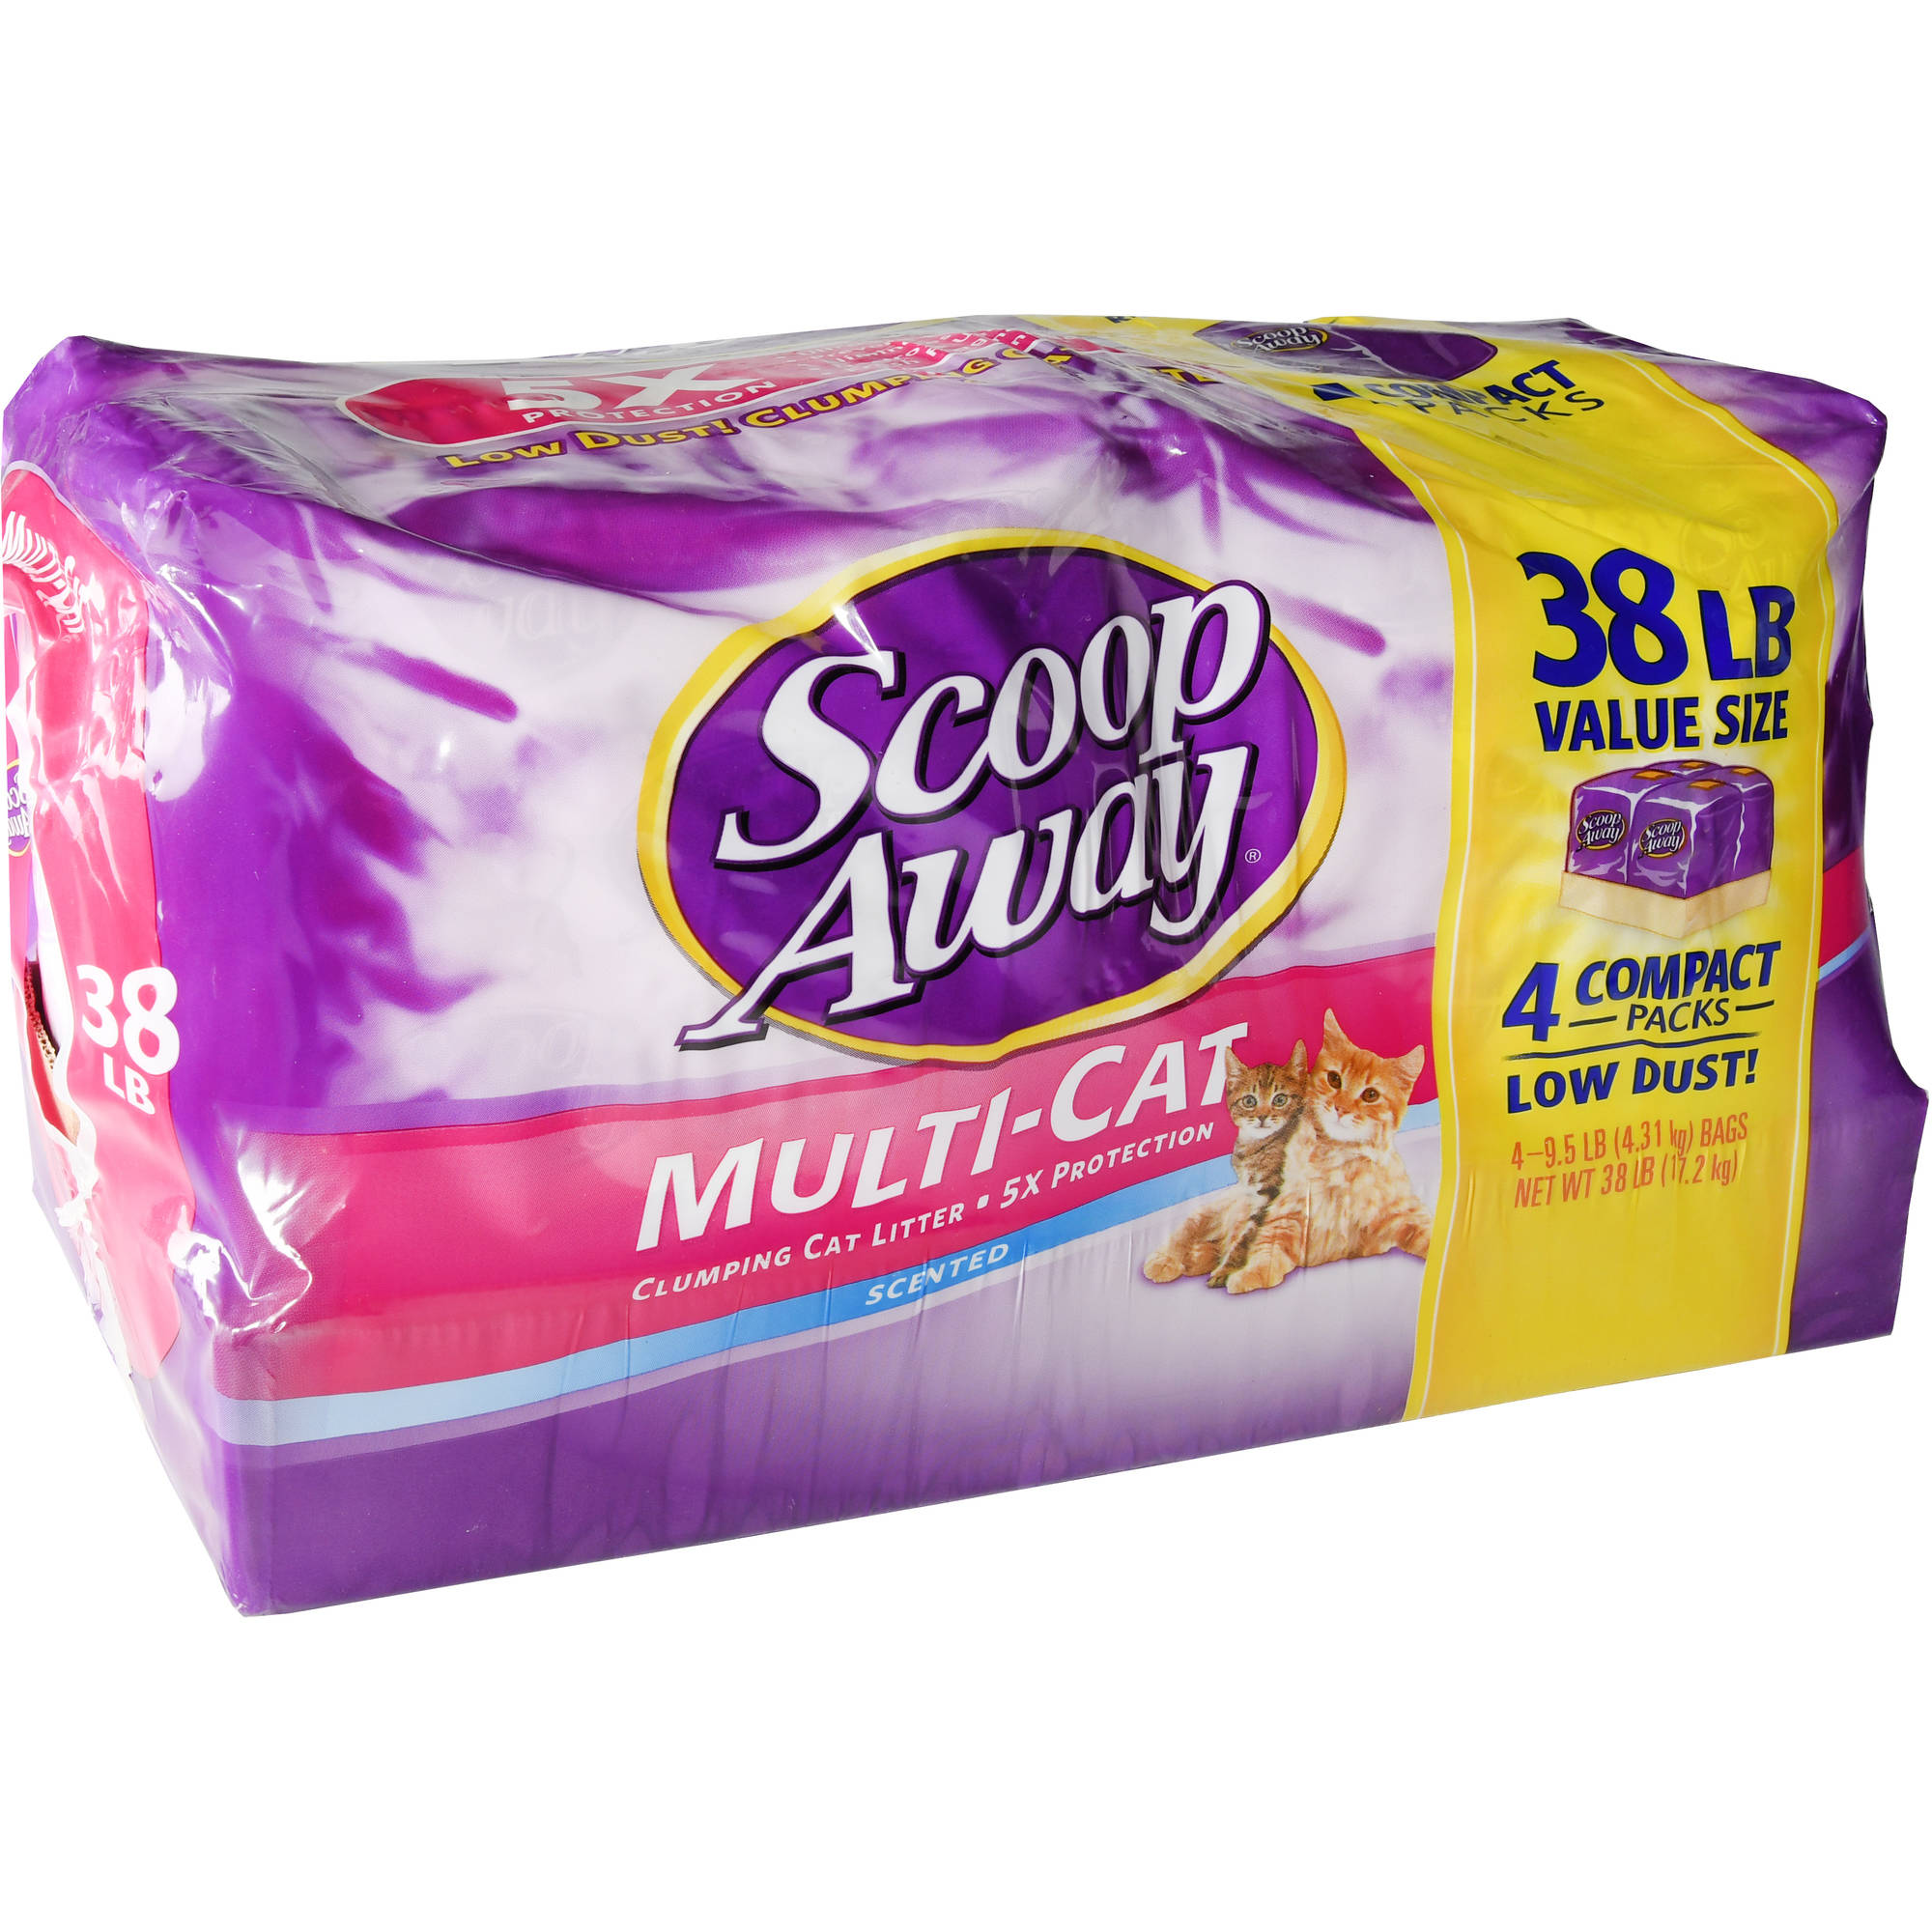 Scoop Away Multi-Cat, Scented Cat Litter, 38 lb Box